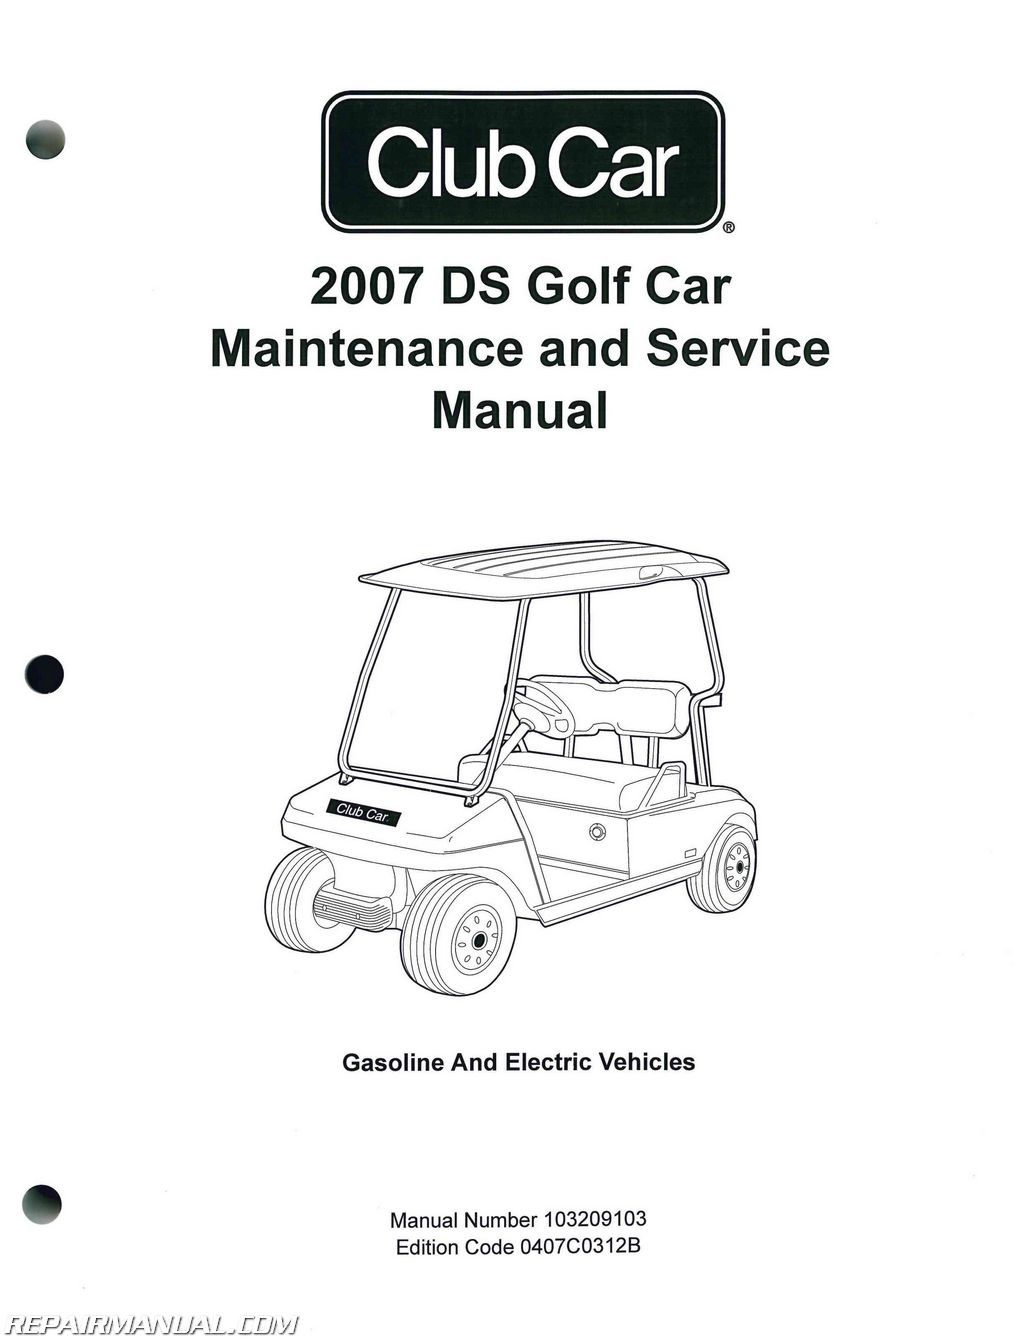 2007 club car ds golf car gas and electric golf cart service manual rh repairmanual com 1999 Club Car 48V Wiring-Diagram Club Car Headlight Wiring Diagram